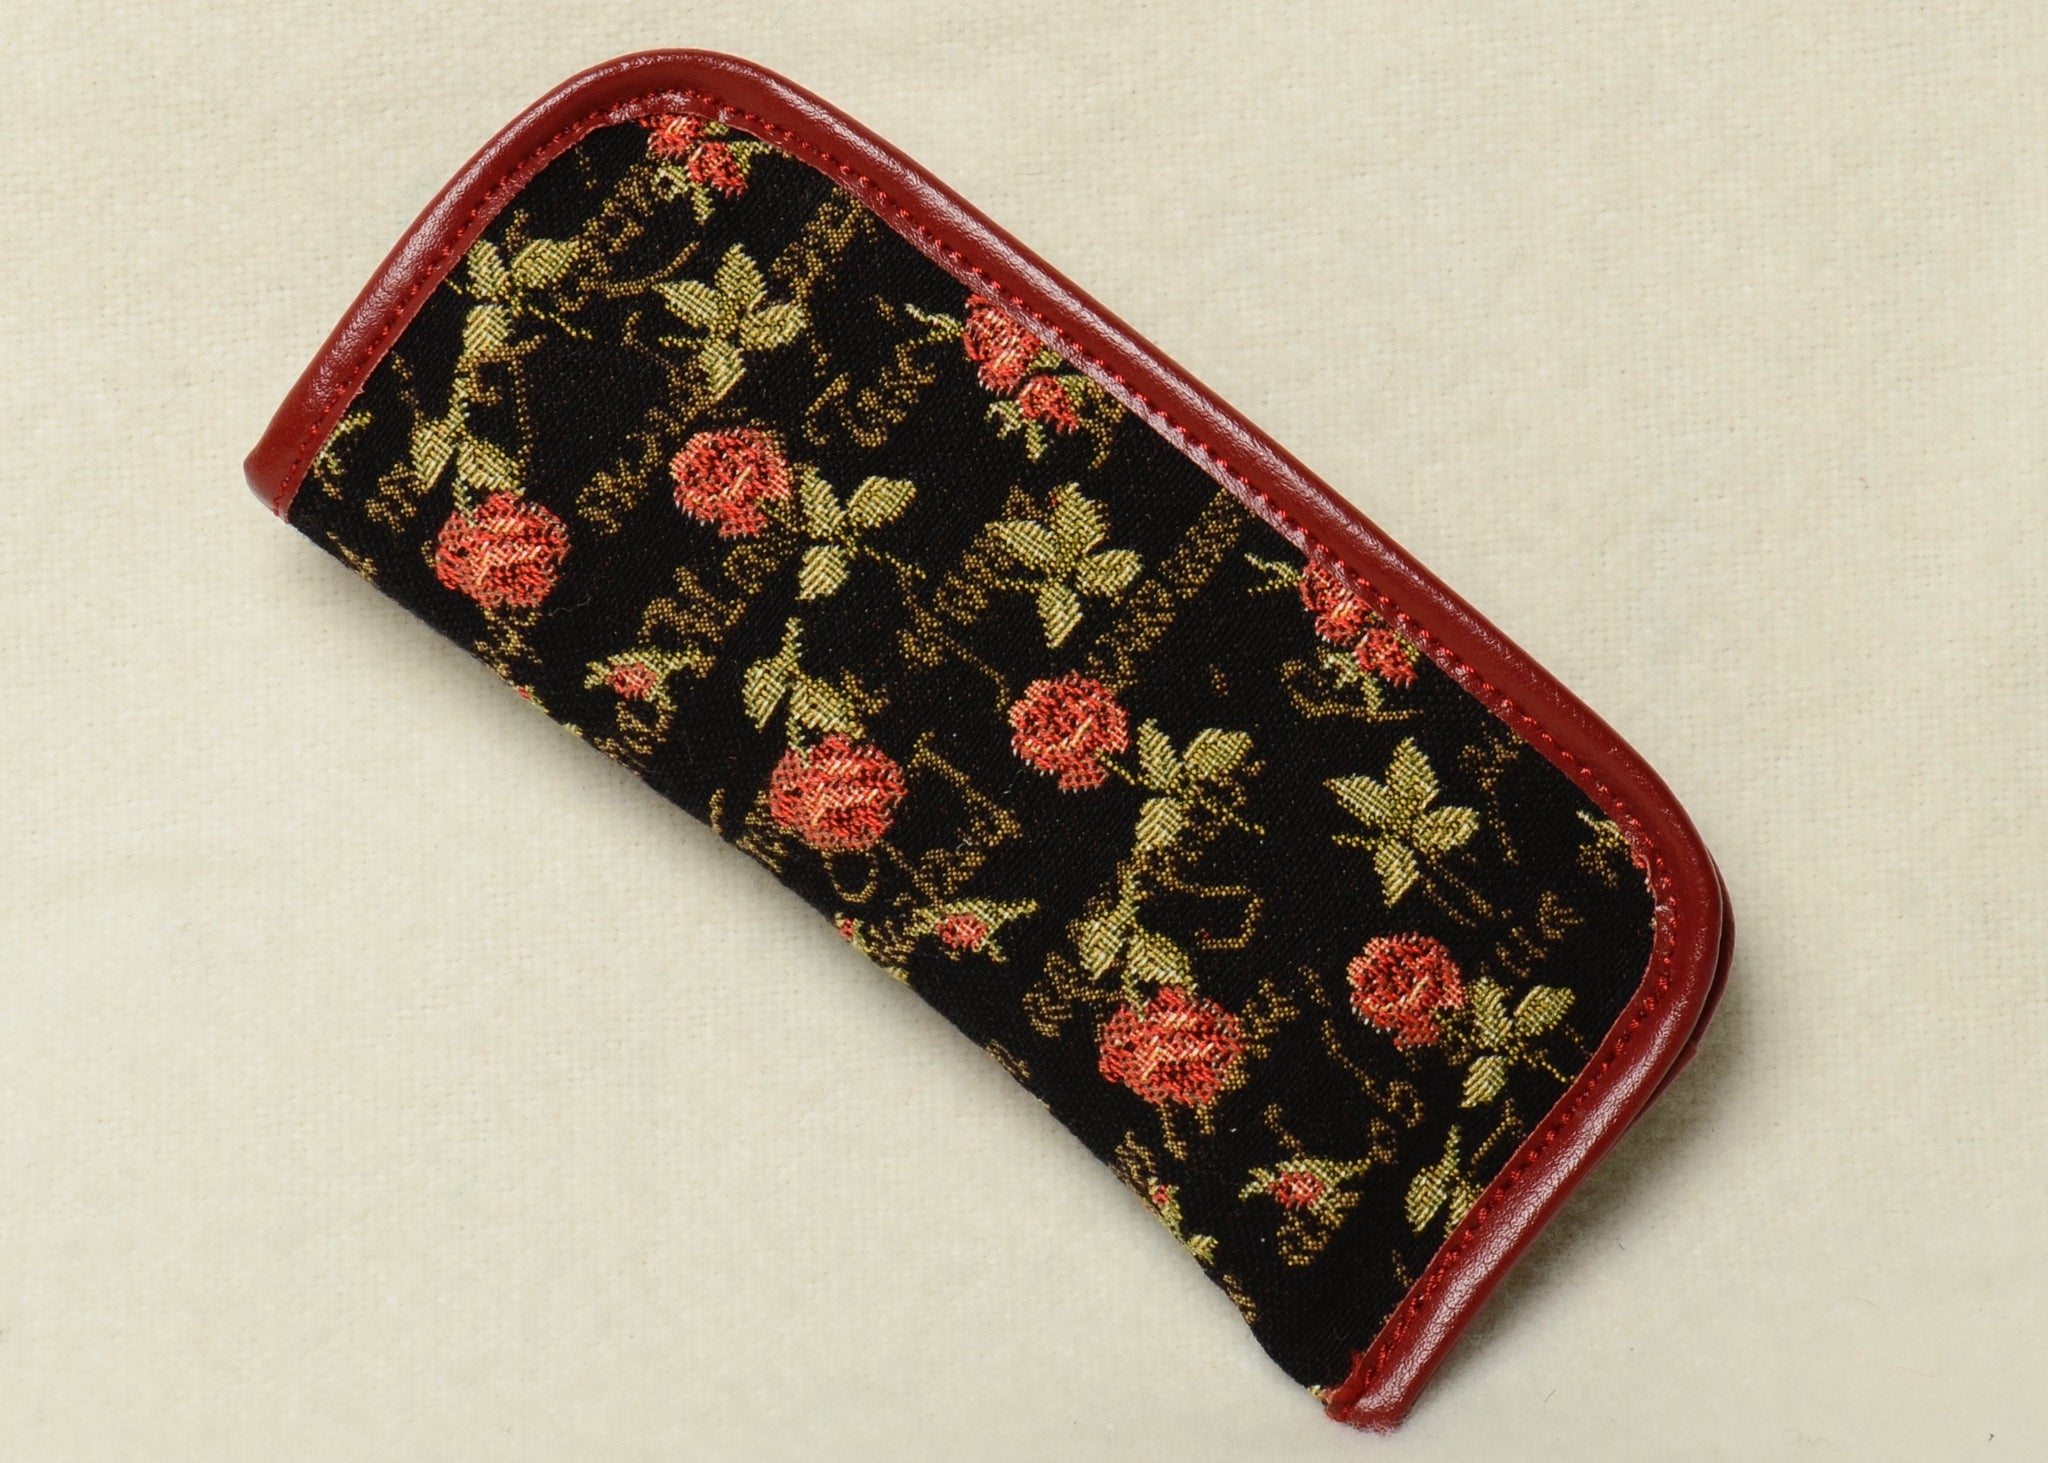 Belgian Tapestry Eyeglass Case with Genuine Leather Accents in Roses Motif